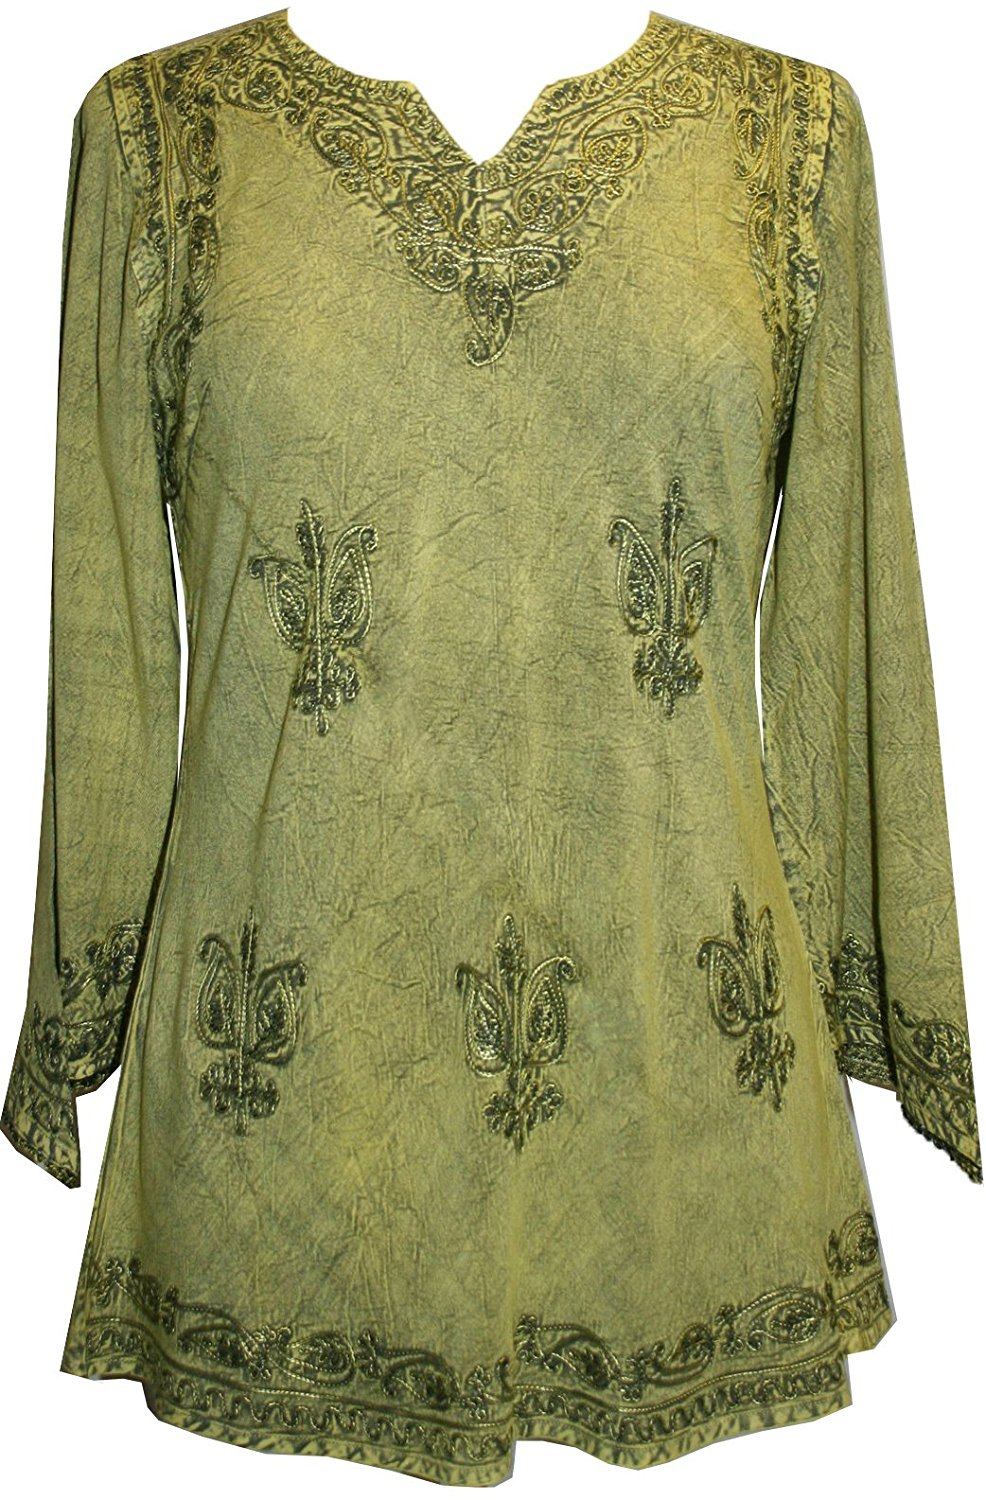 127 B Diamond Neck Embroidered Rayon Renaissance Tunic Blouse - Agan Traders